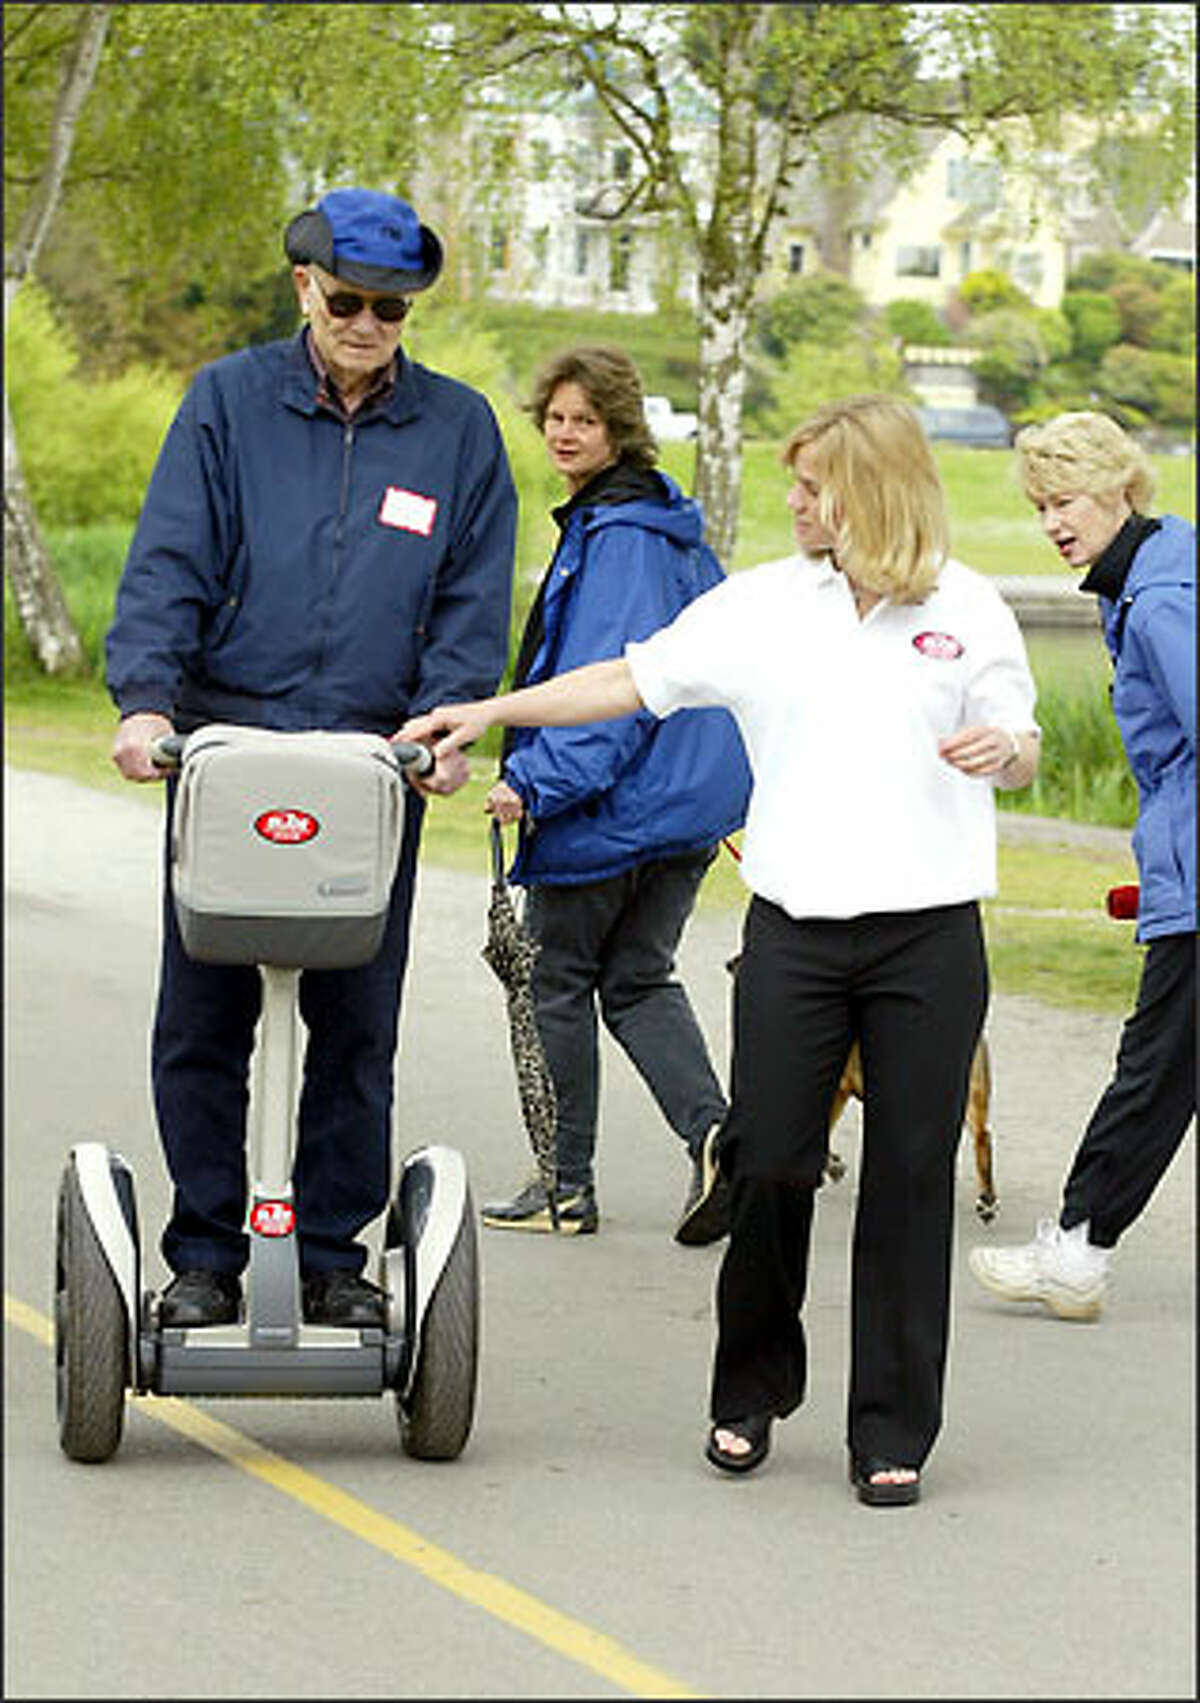 Dale Blanchard of Redmond tries out a Segway with help from Sara Powers, whose company will rent the scooters.